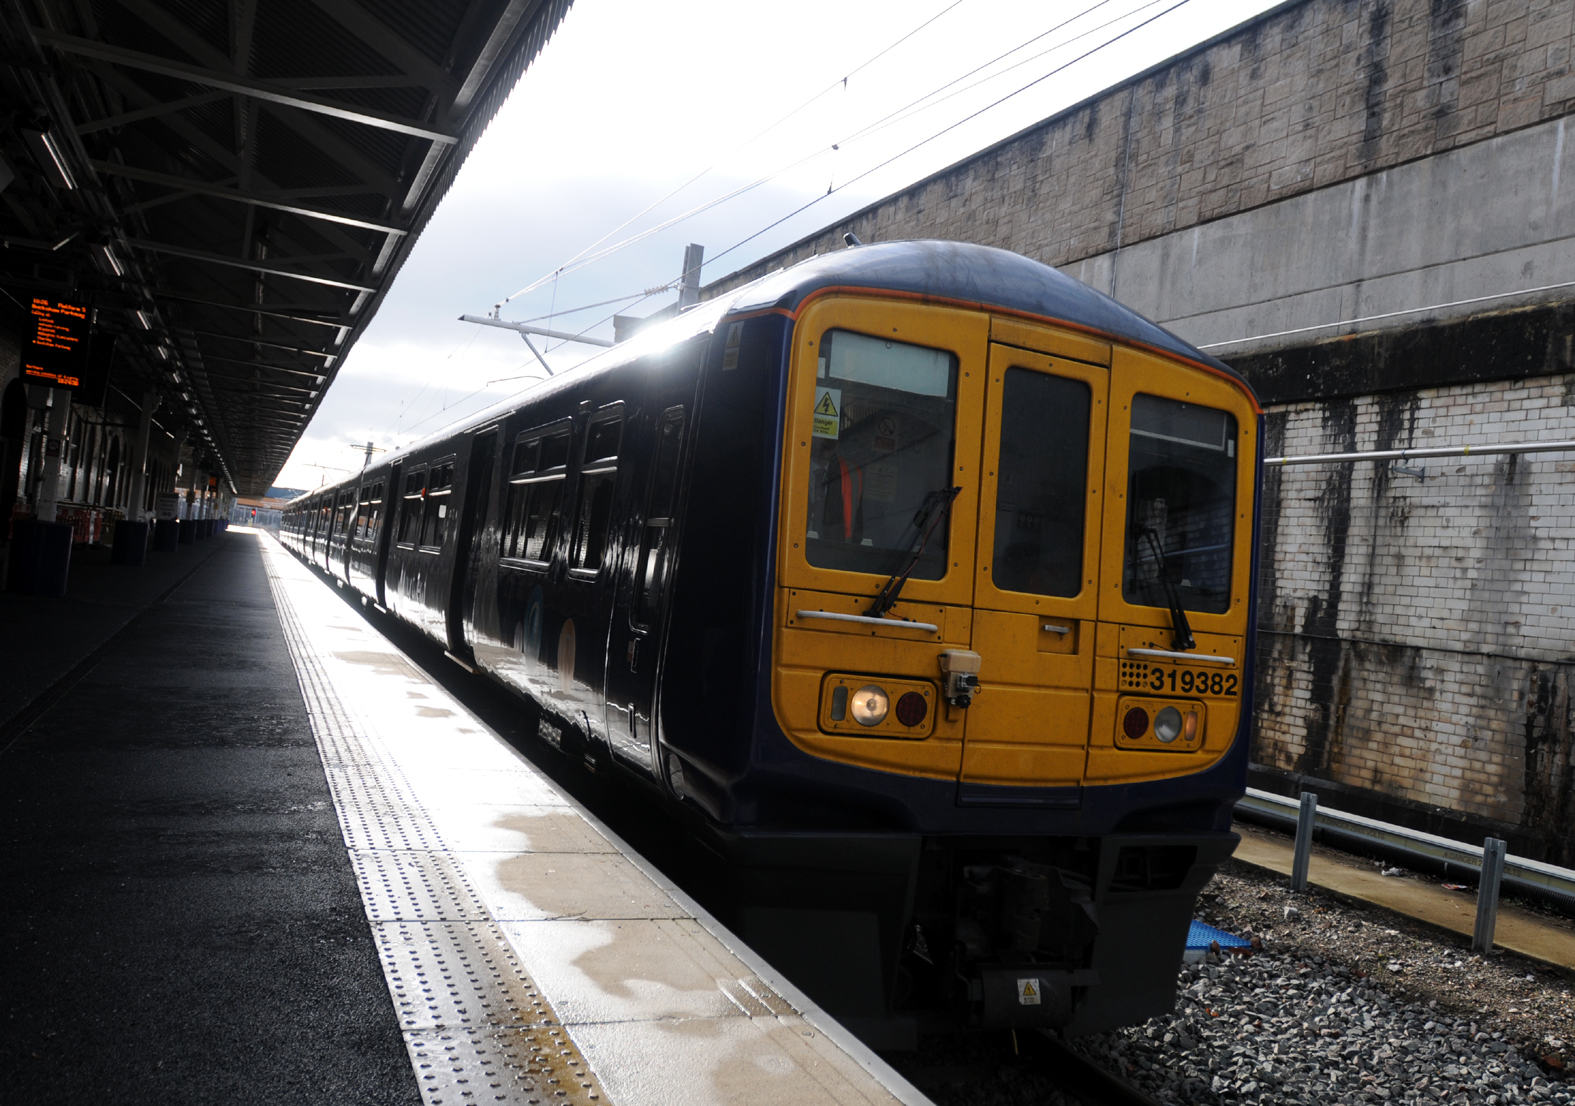 LETTER: Unimpressed by first journey on electric trains